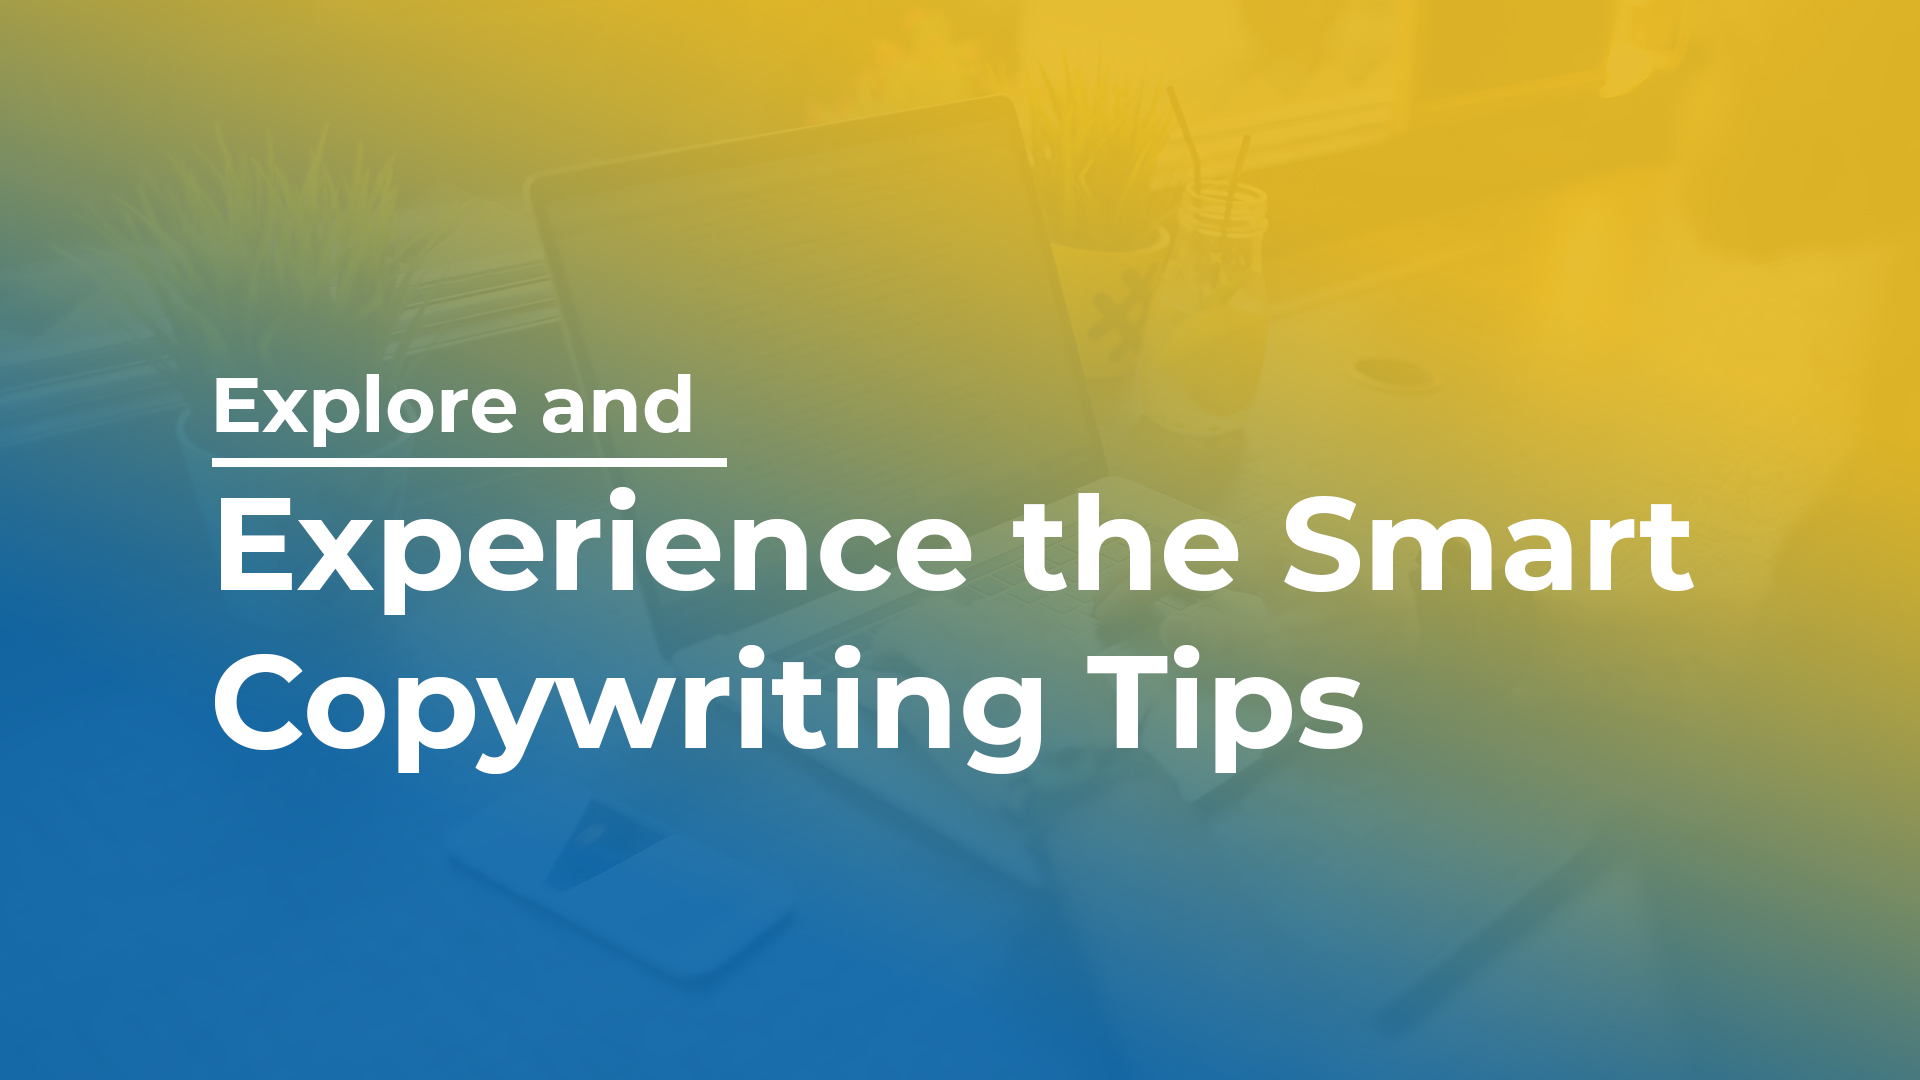 Explore and Experience the Smart Copywriting Tips